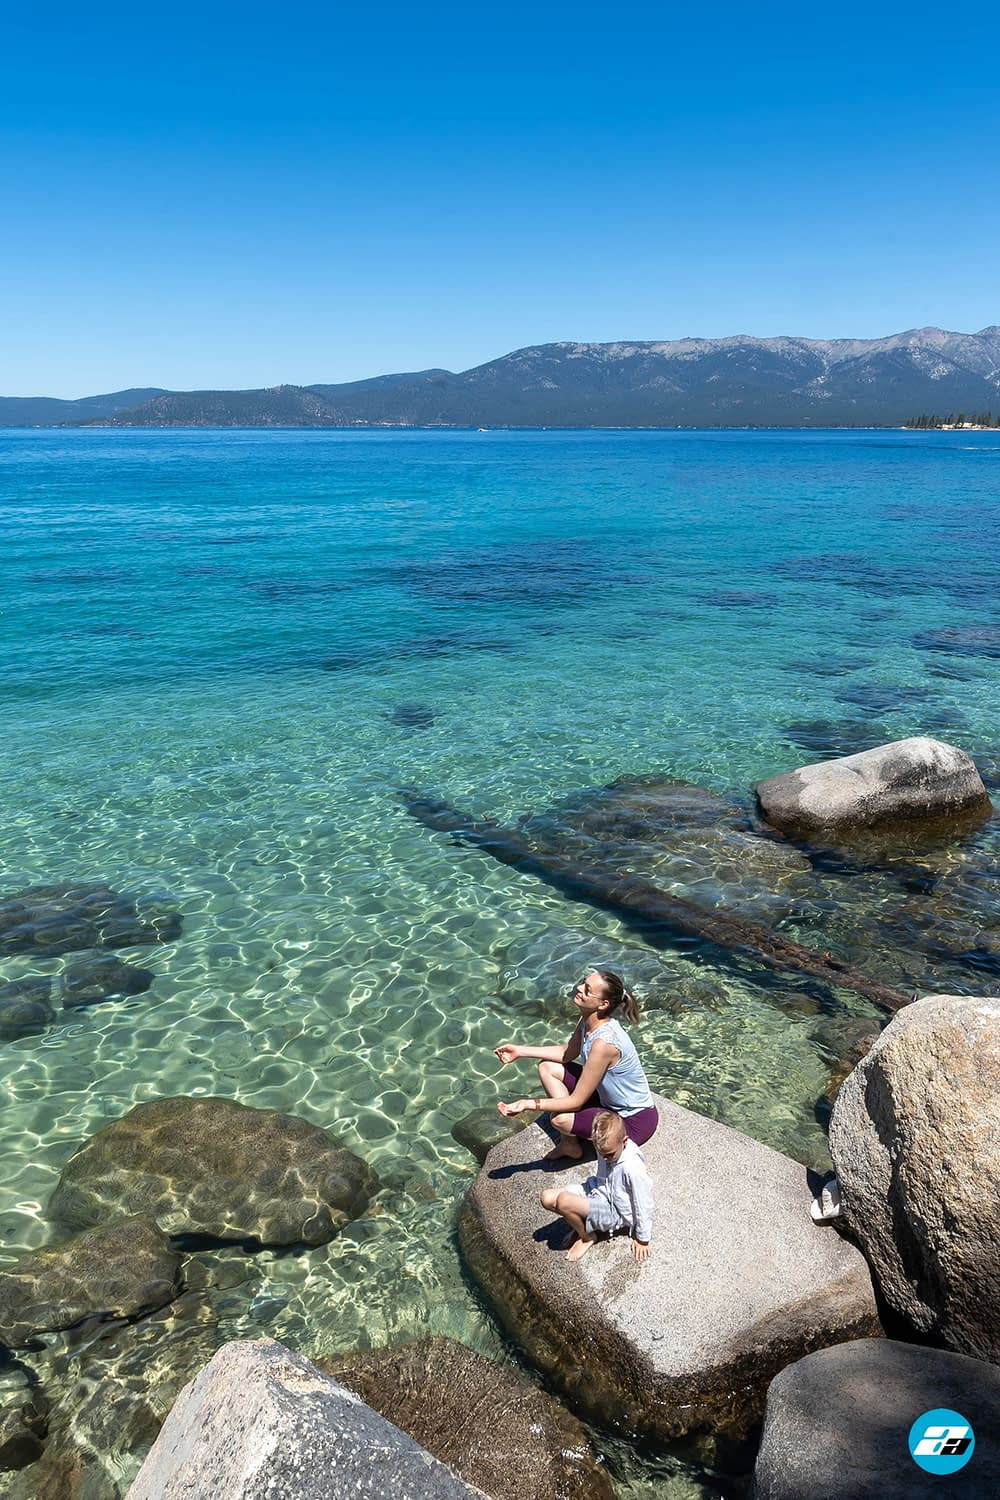 Crystal Bay, Lake Tahoe, CA